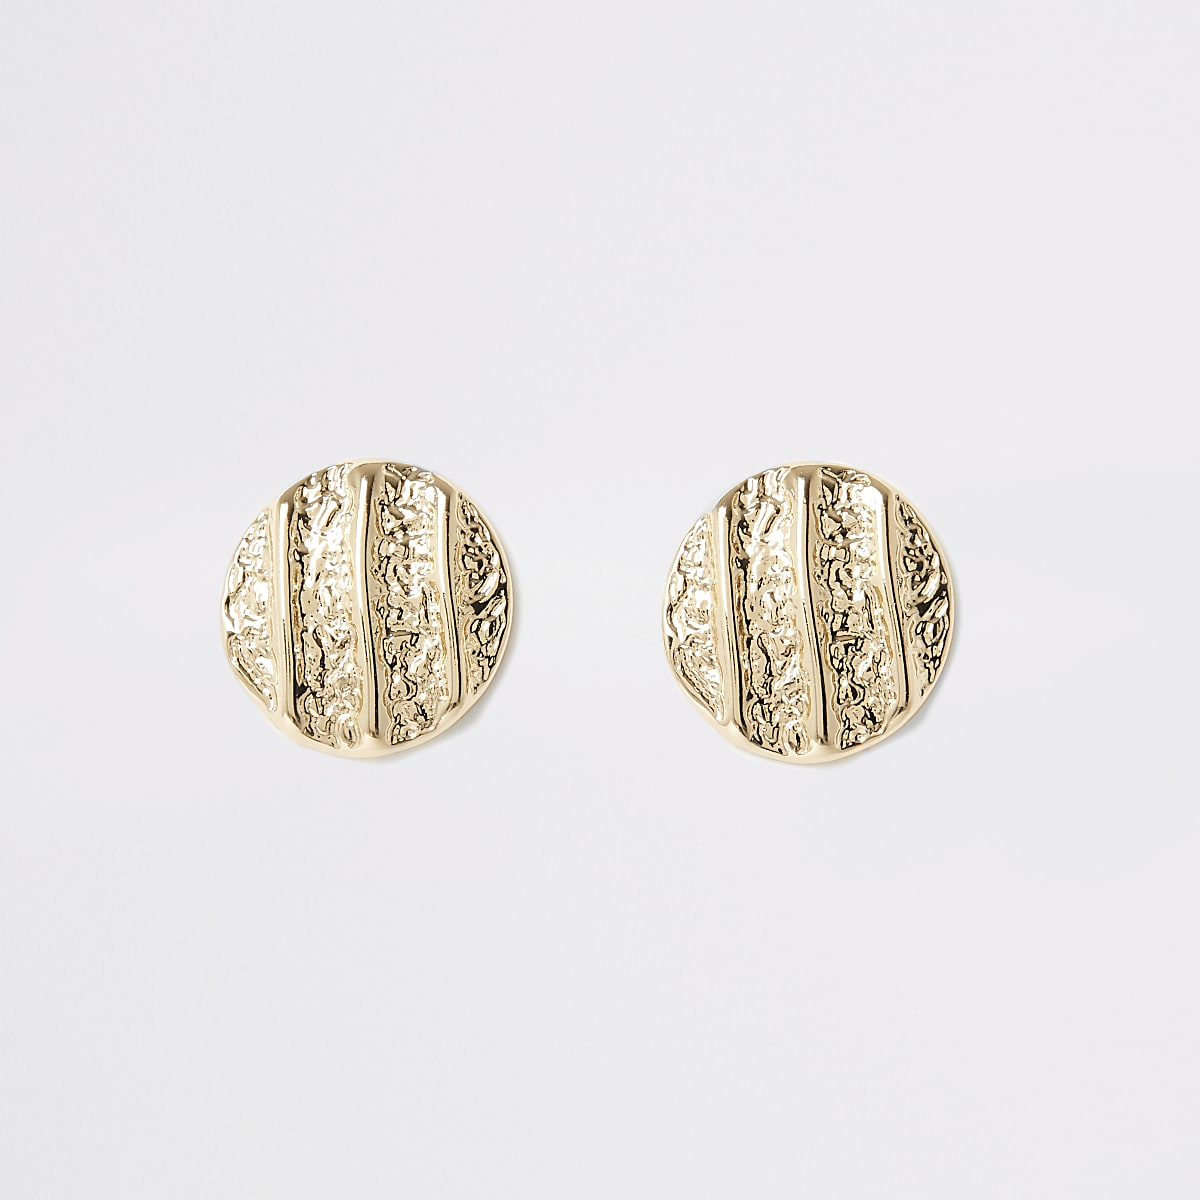 Gold color textured stud earrings